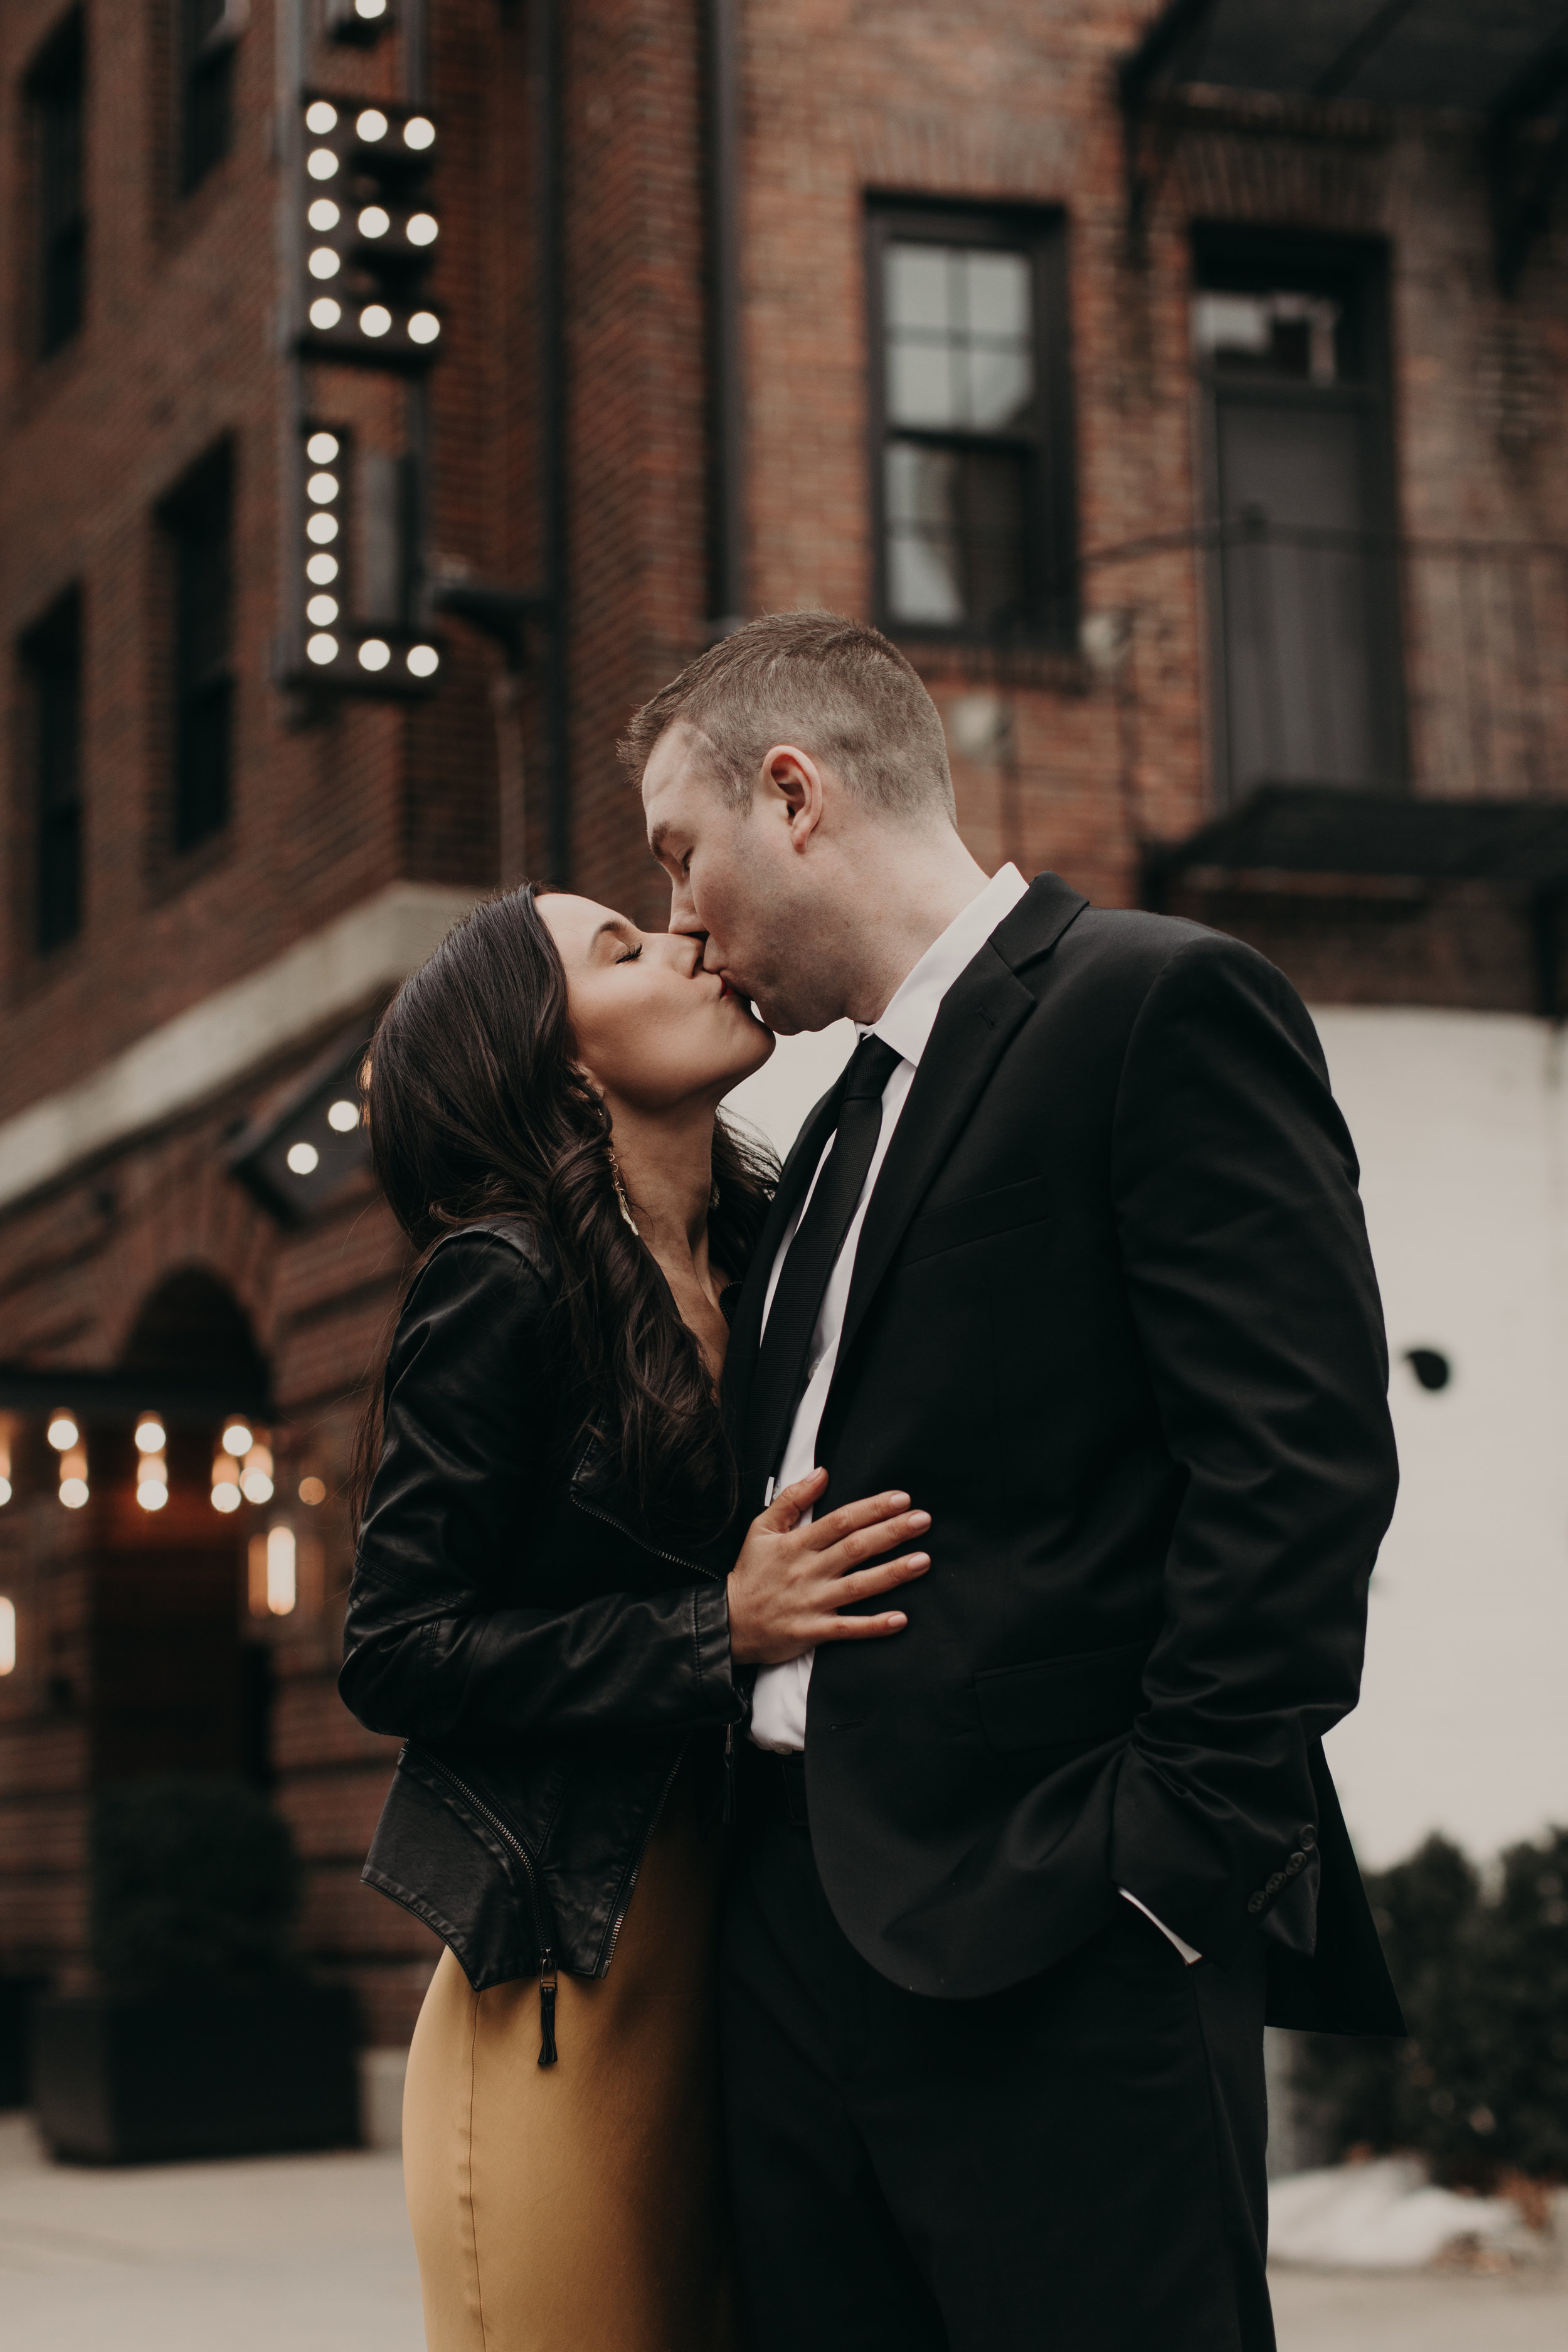 Chris_Marissa_Downtown_Providence_Rhode_Island_Engagement_Session_005.jpeg